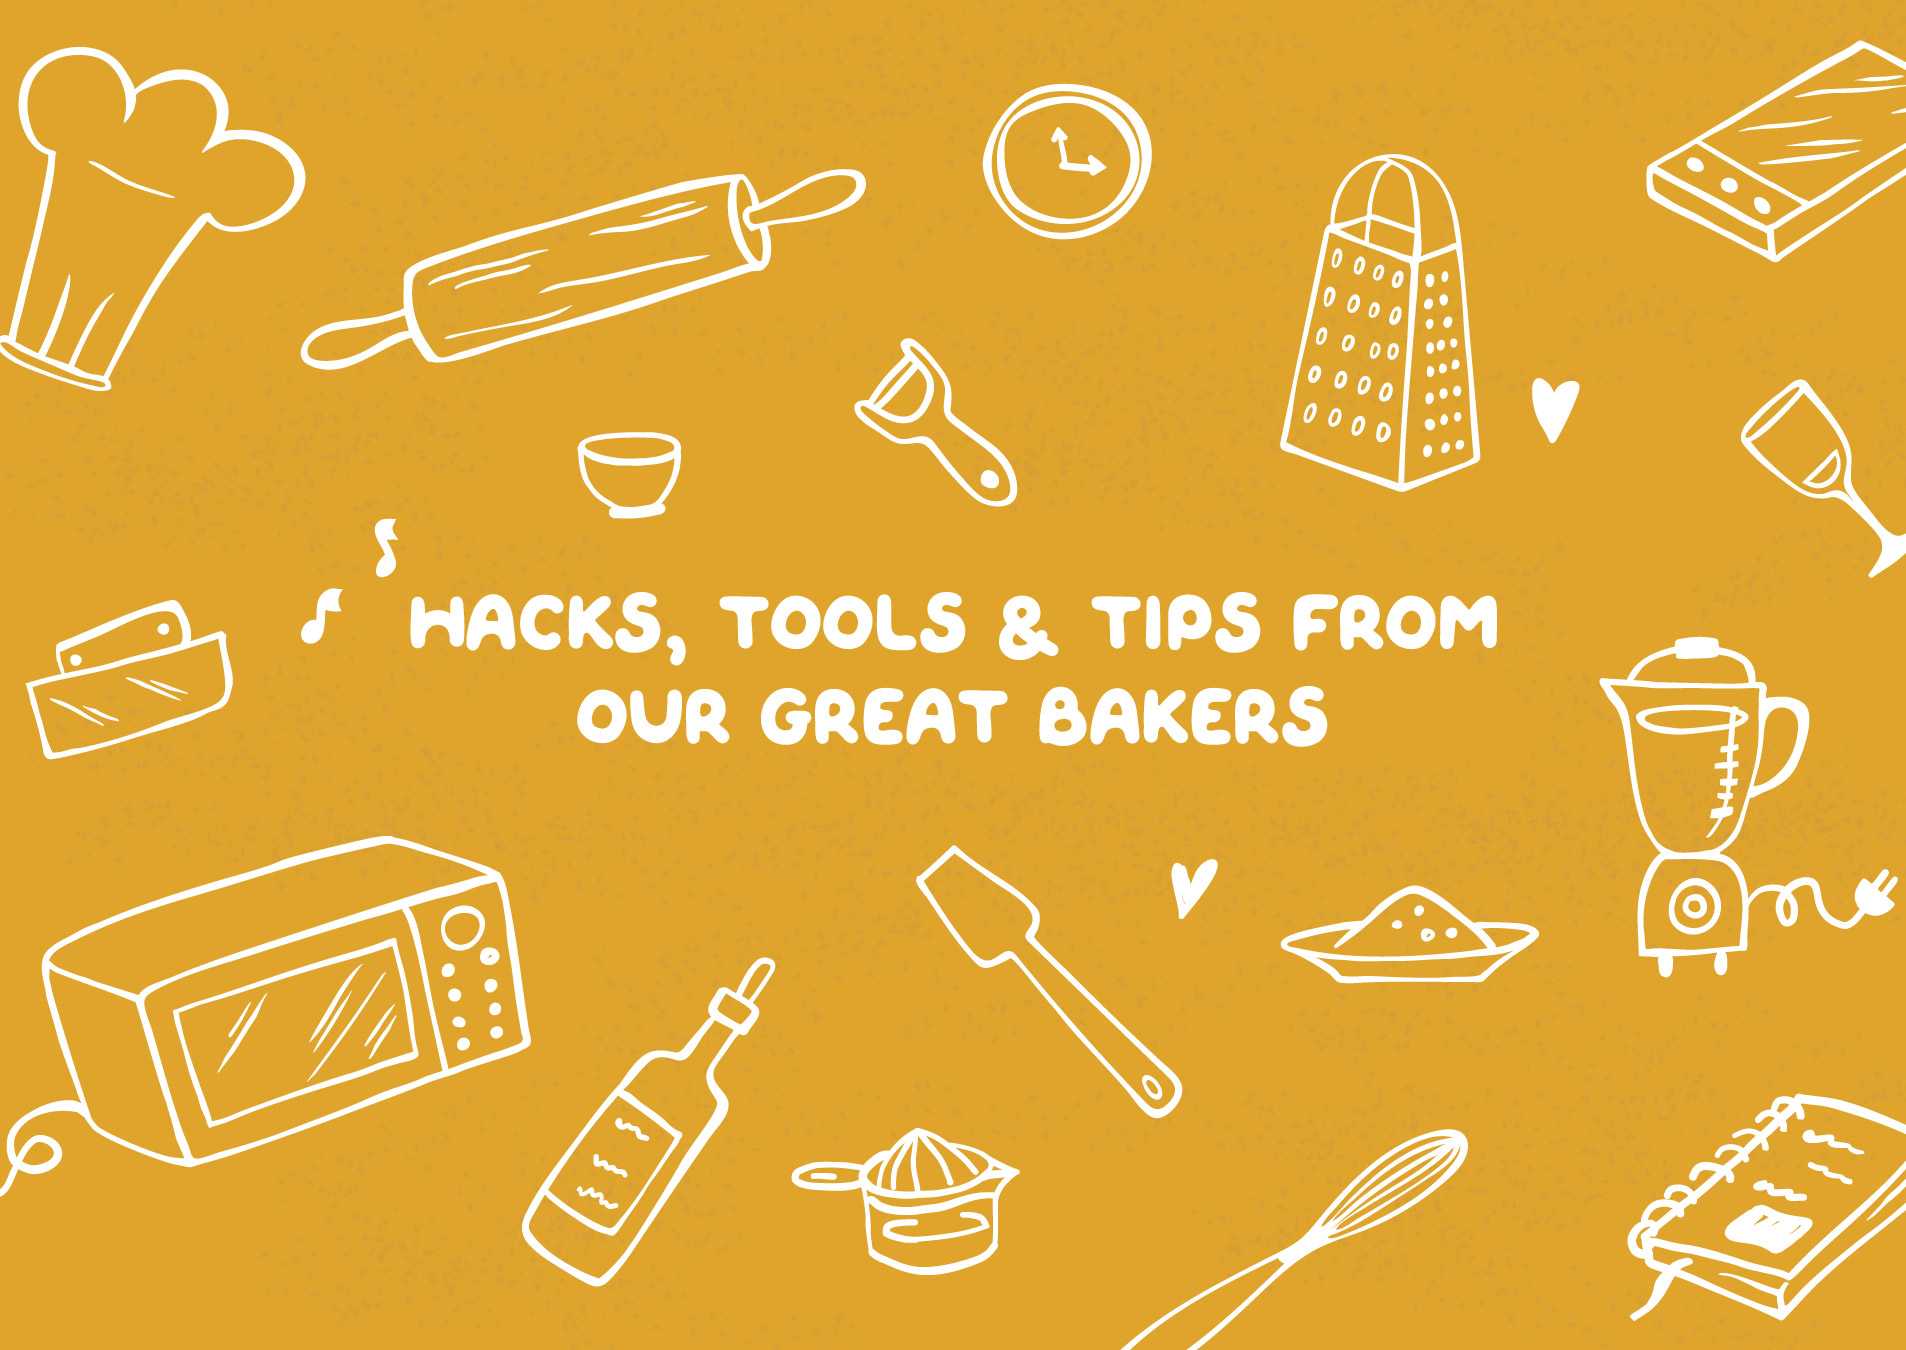 Hacks tools and tips from our great bakers 1906x1350